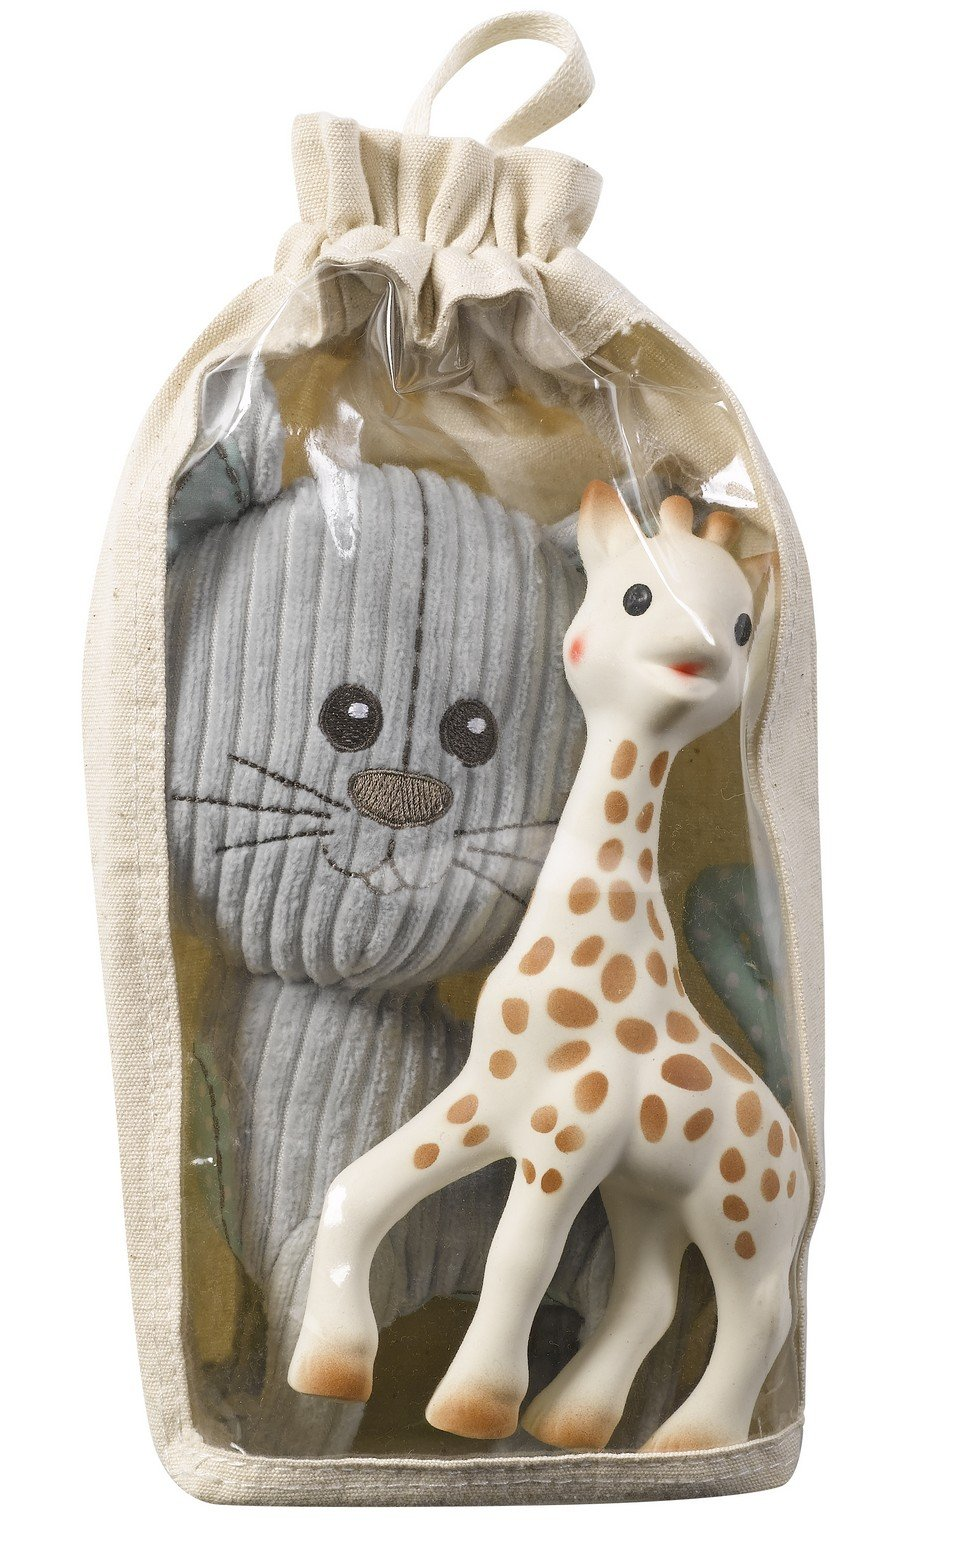 Vulli Cotton Bag Toy Set, Sophie the Giraffe and Lazare the cat